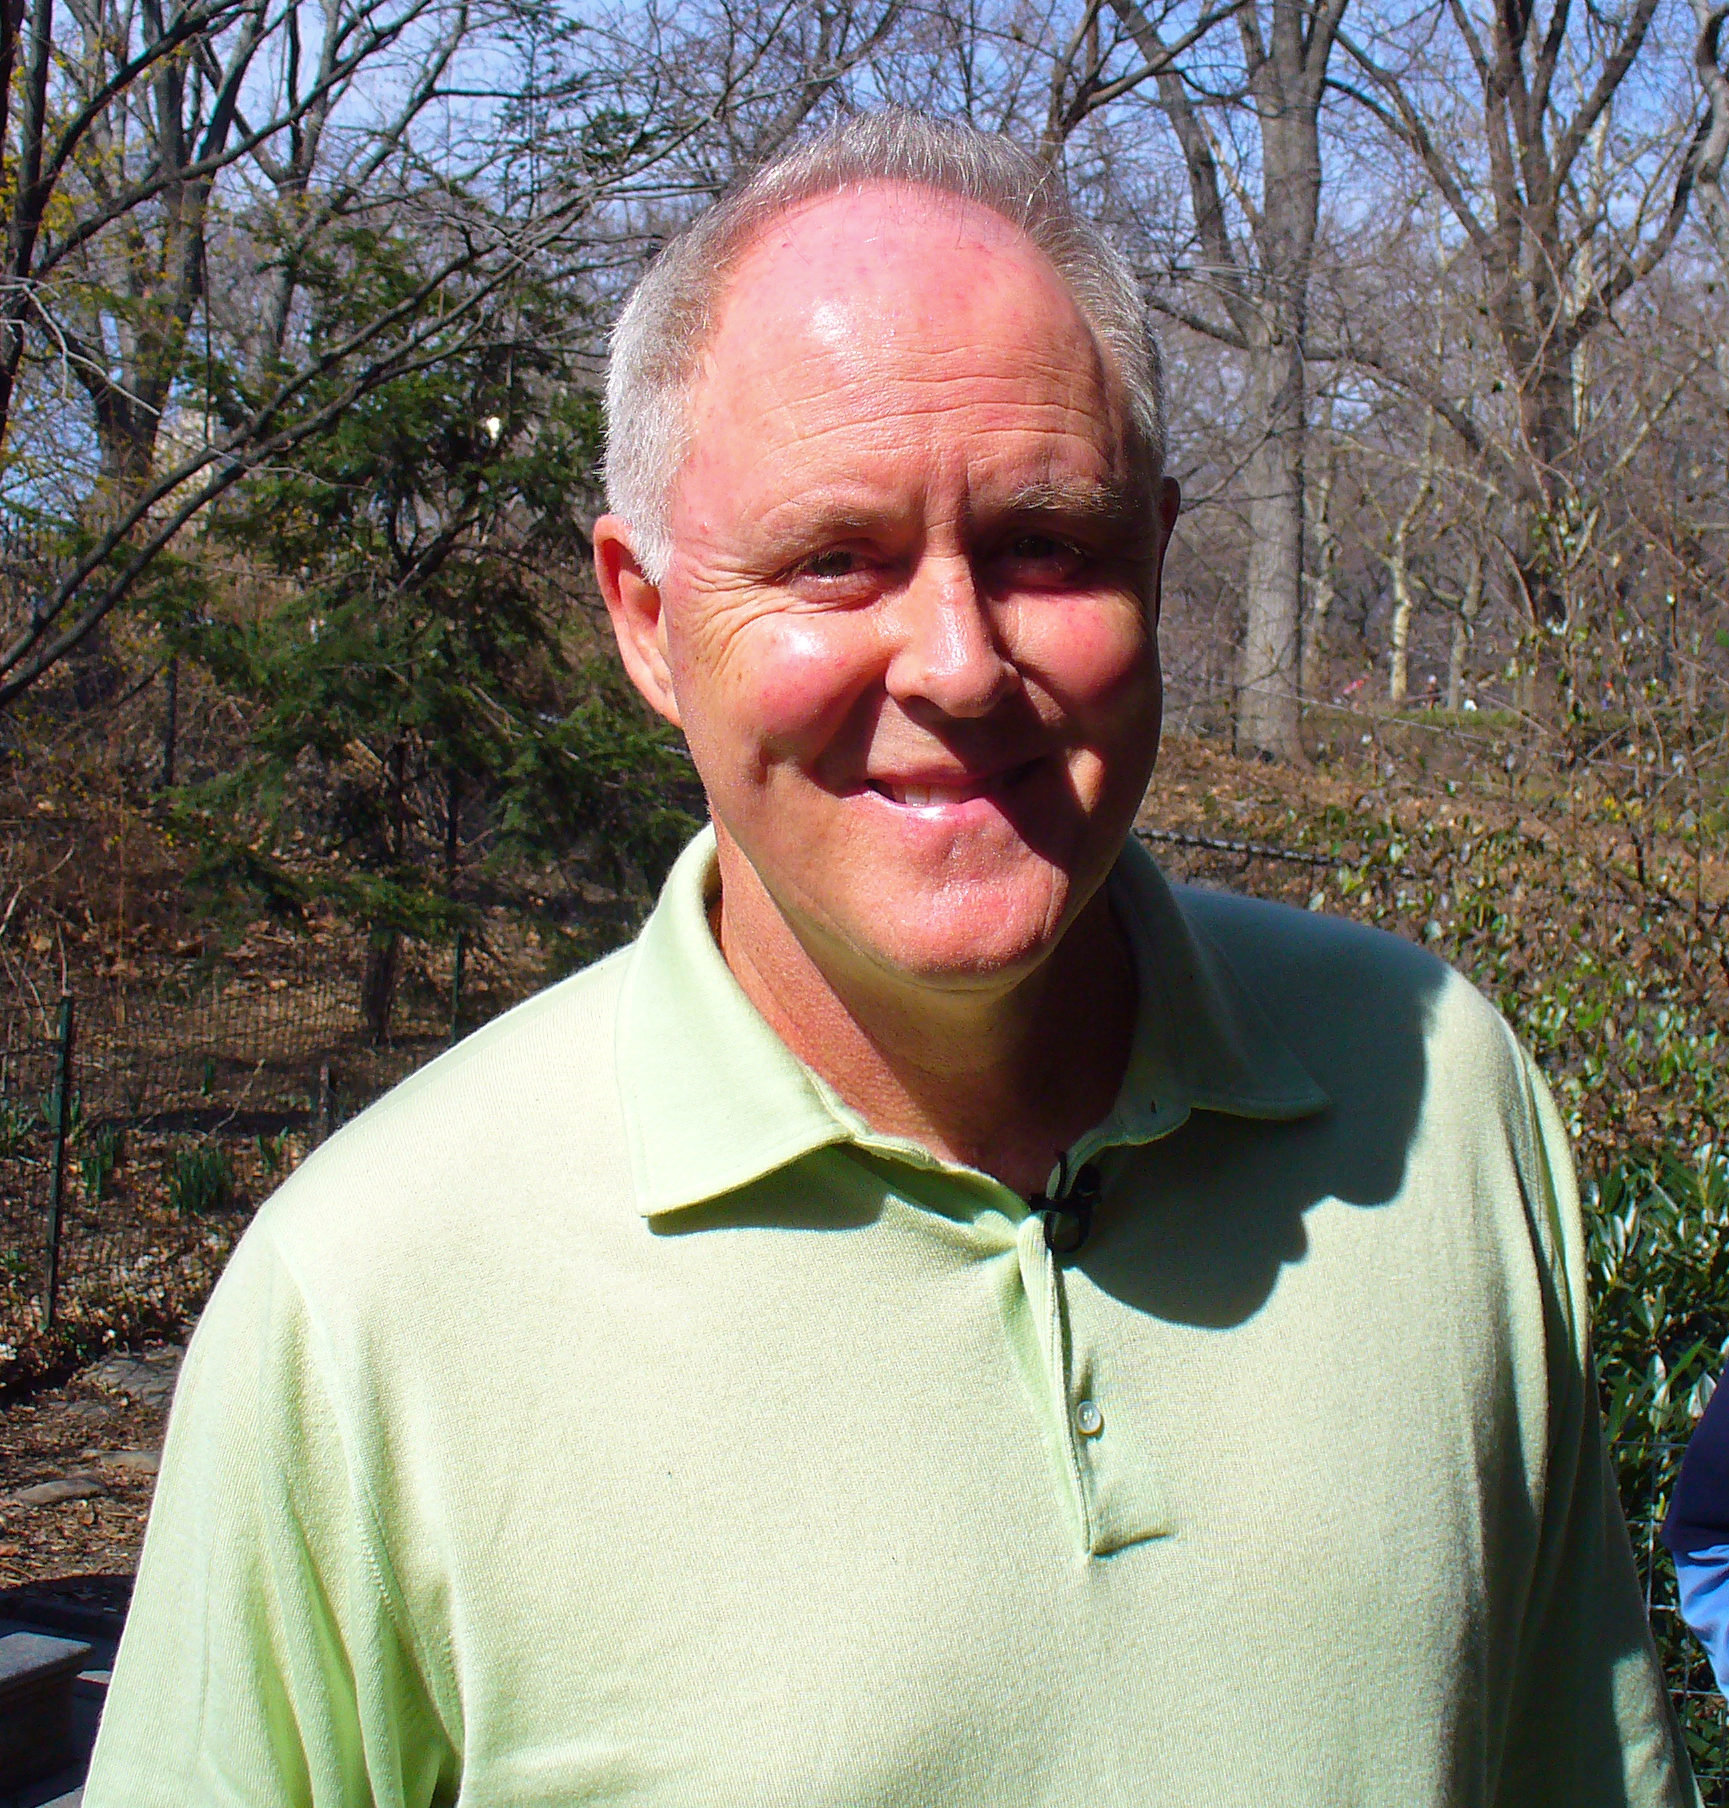 The 72-year old son of father Arthur Washington Lithgow III and mother Sarah Jane Price John Lithgow in 2018 photo. John Lithgow earned a  million dollar salary - leaving the net worth at 45 million in 2018